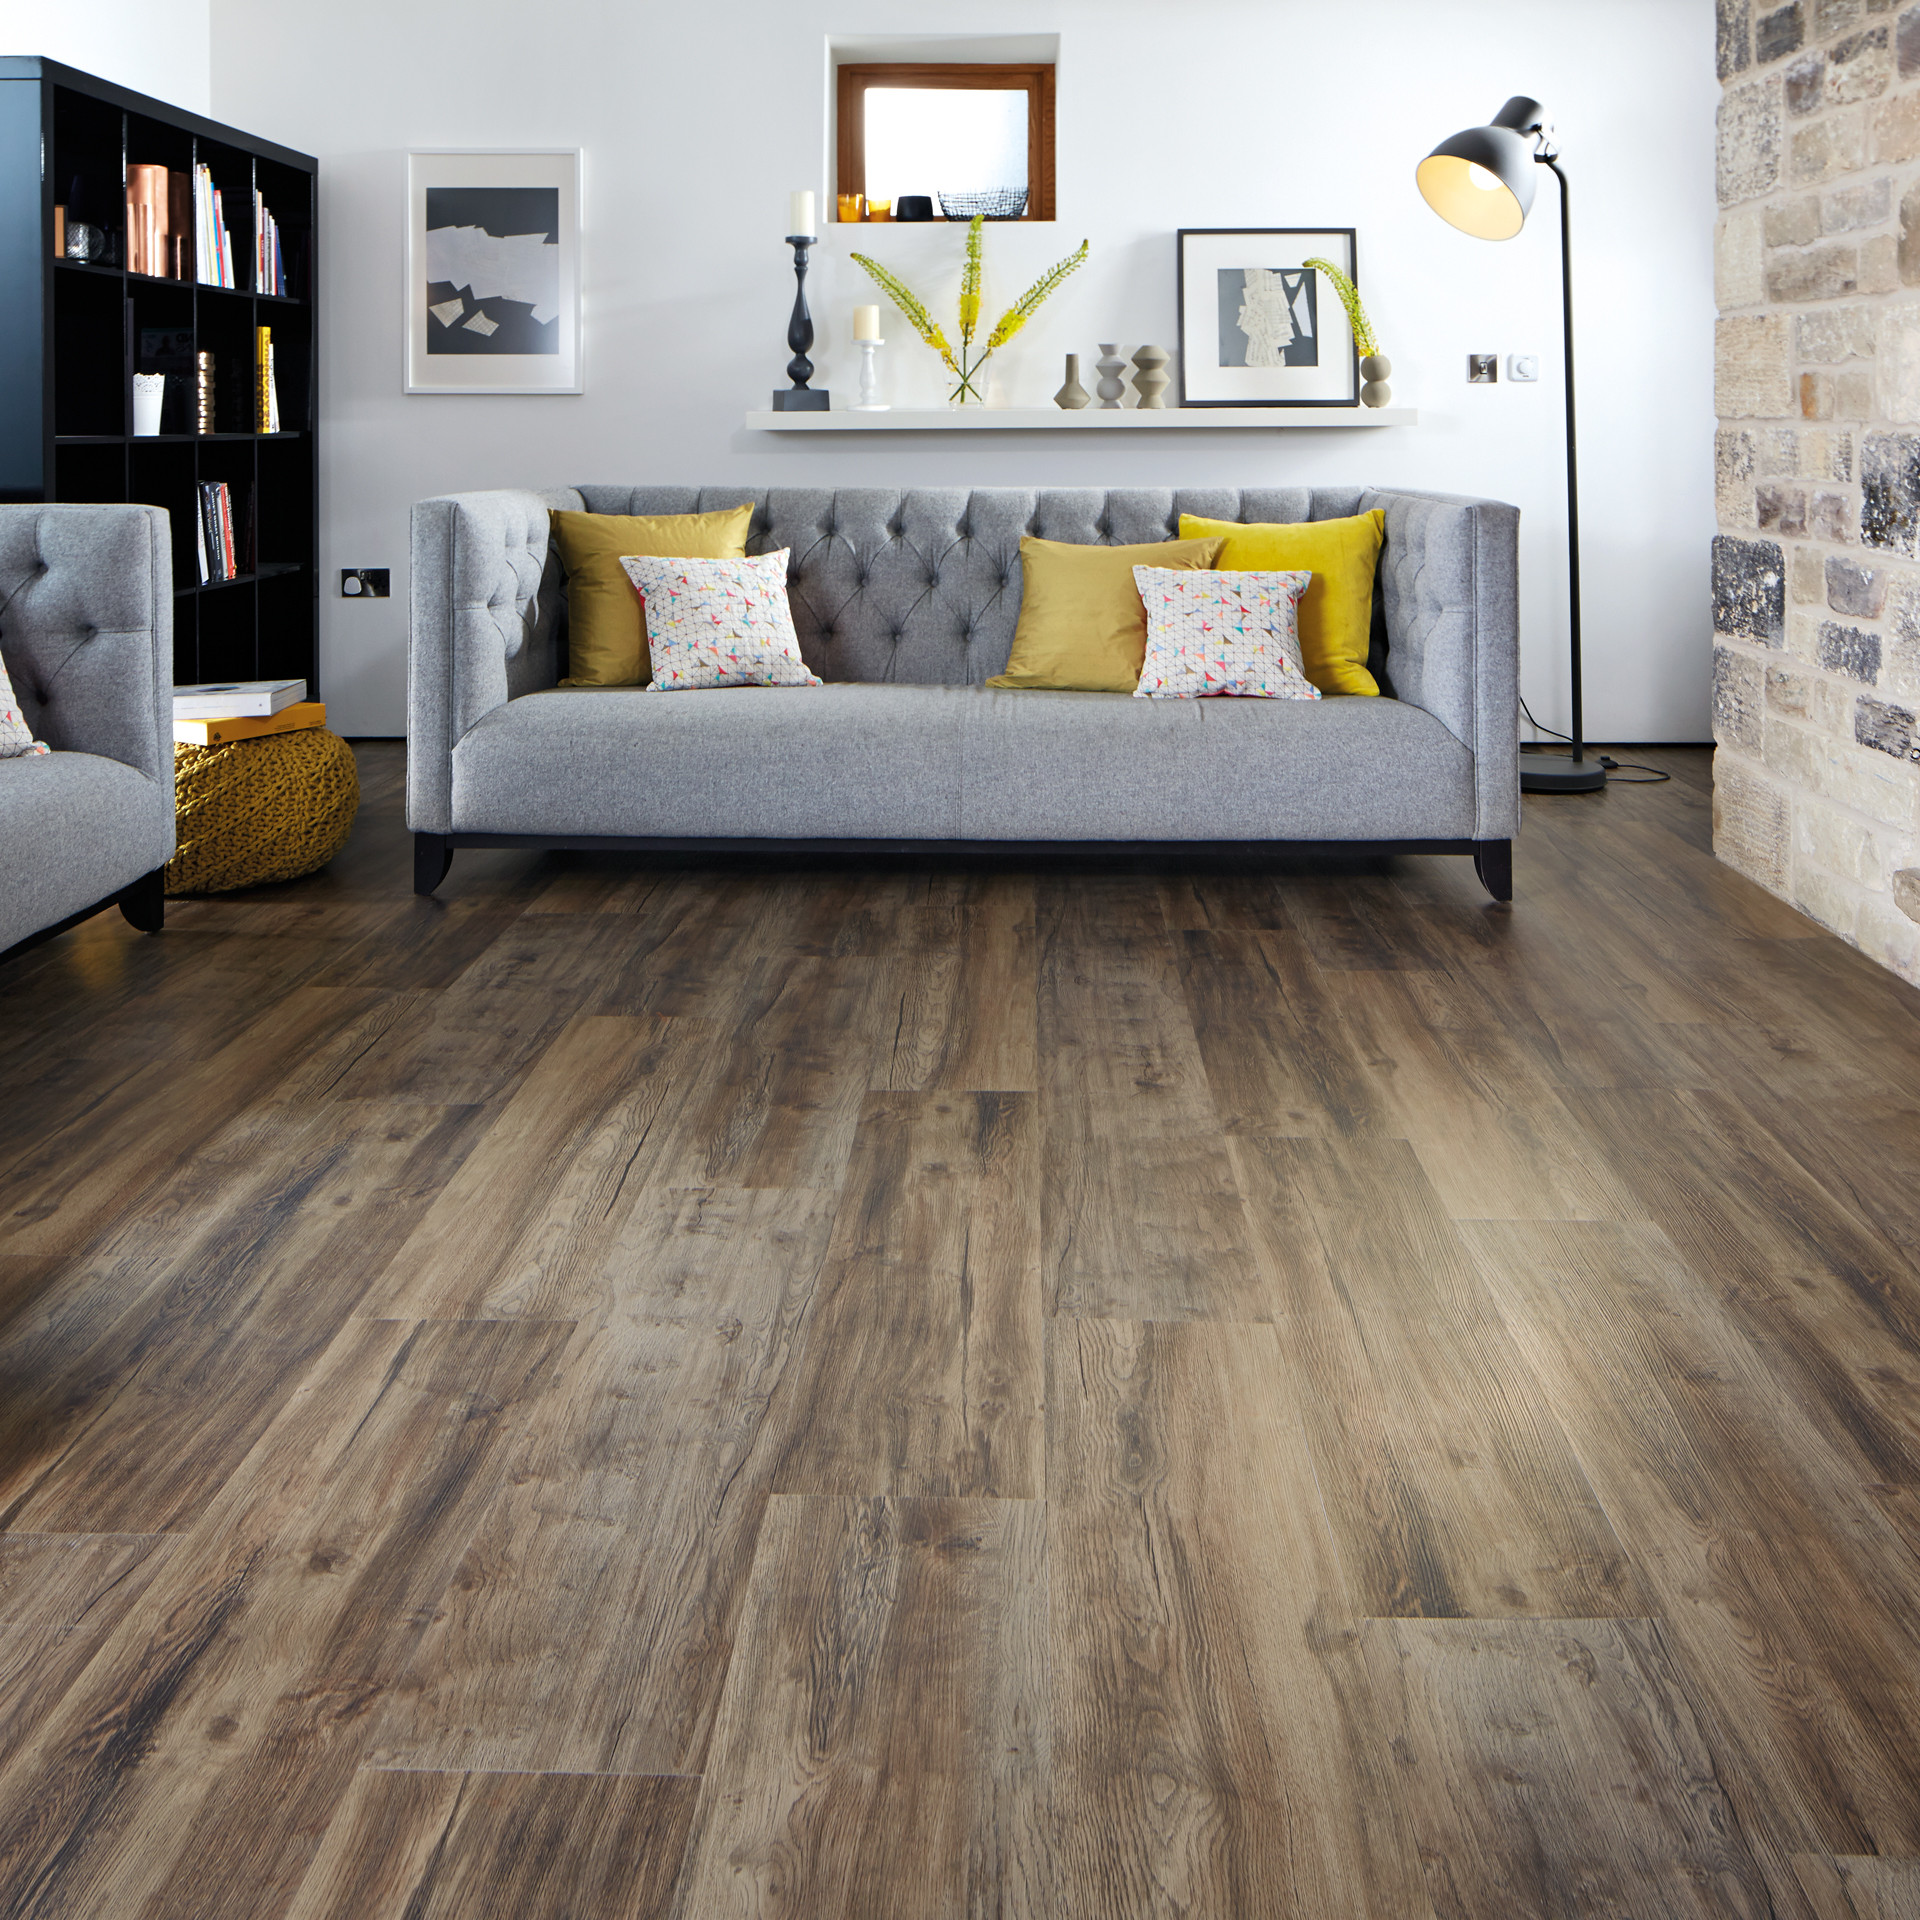 Best ideas about Living Room Flooring . Save or Pin Classic Modern Design Ideas and Tips Now.